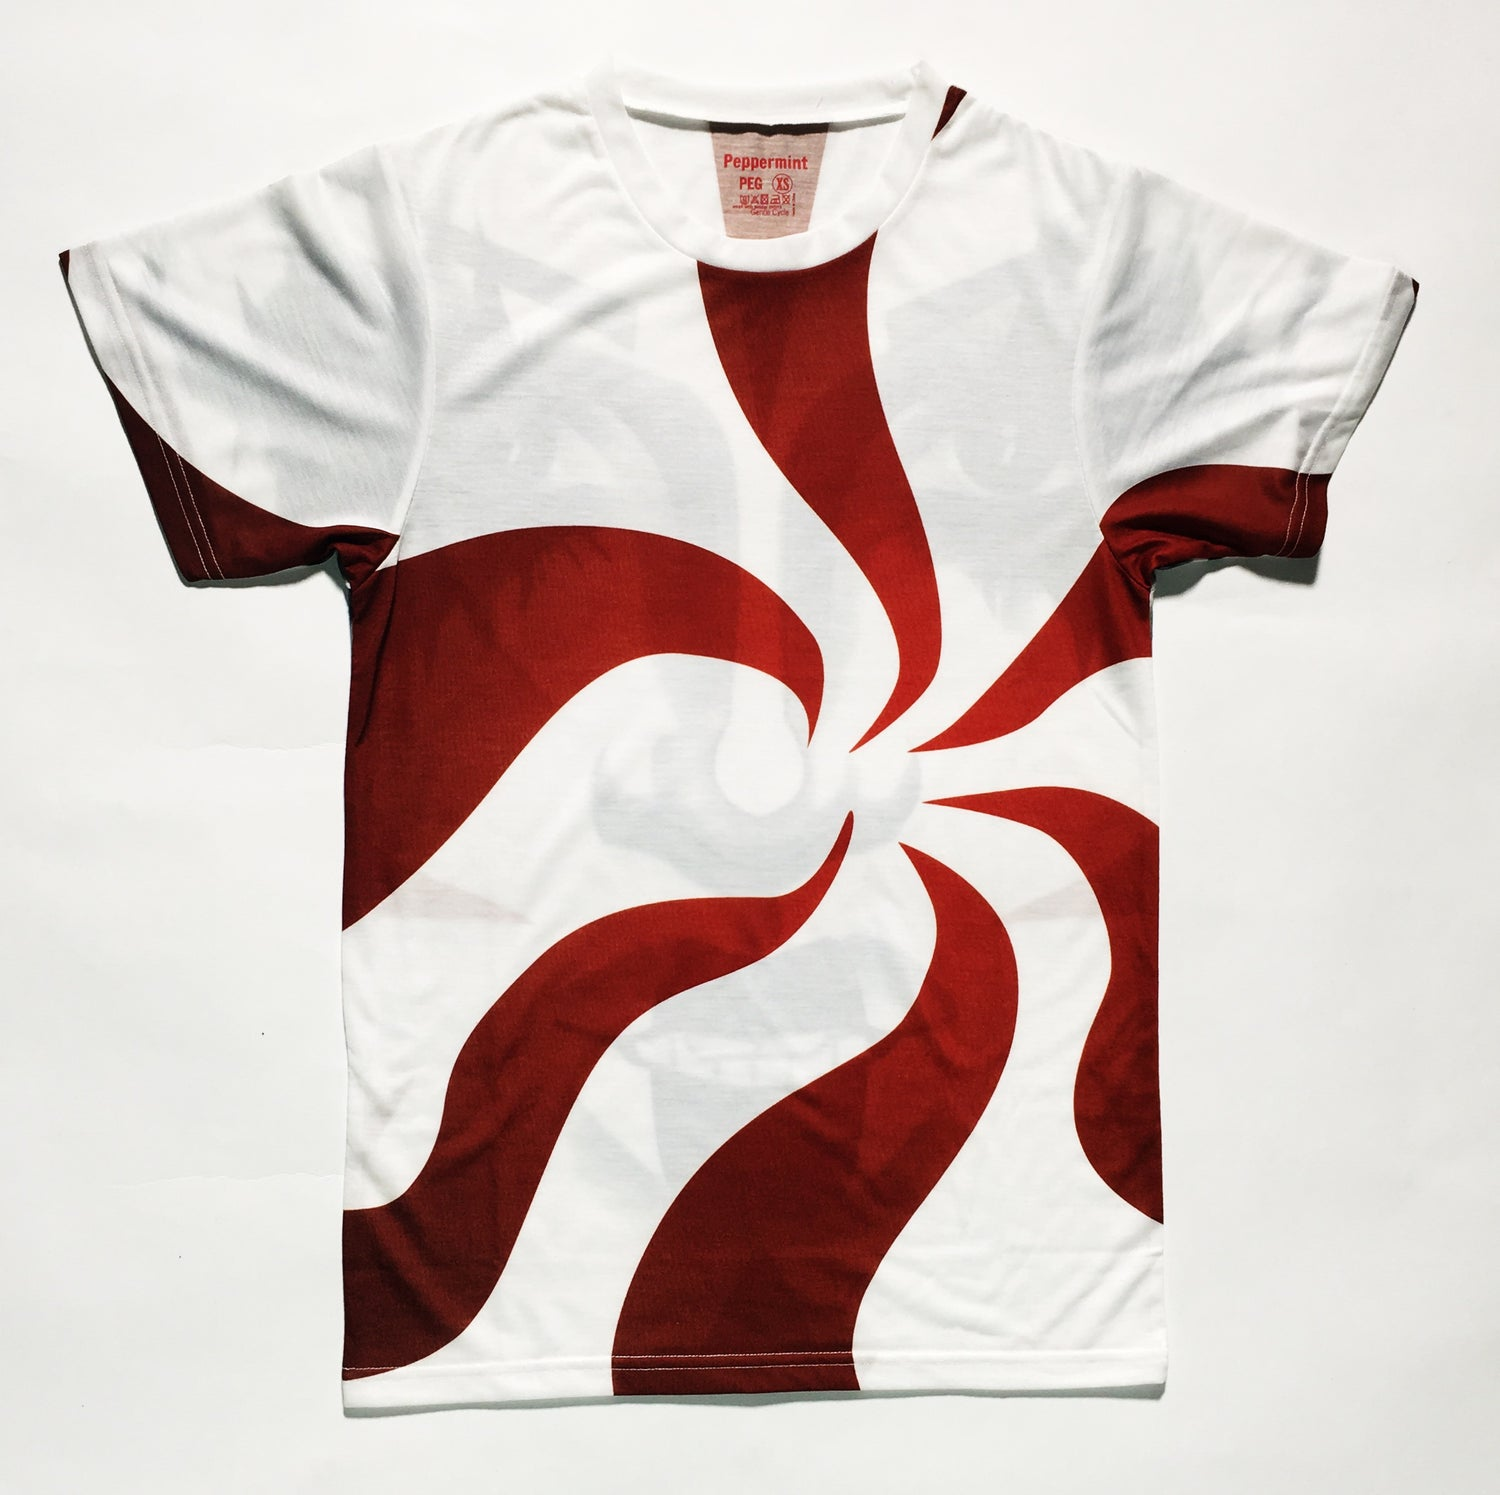 Image of ON-SALE - Peppermint Before Runway Tee - SIGNED & UNSIGNED